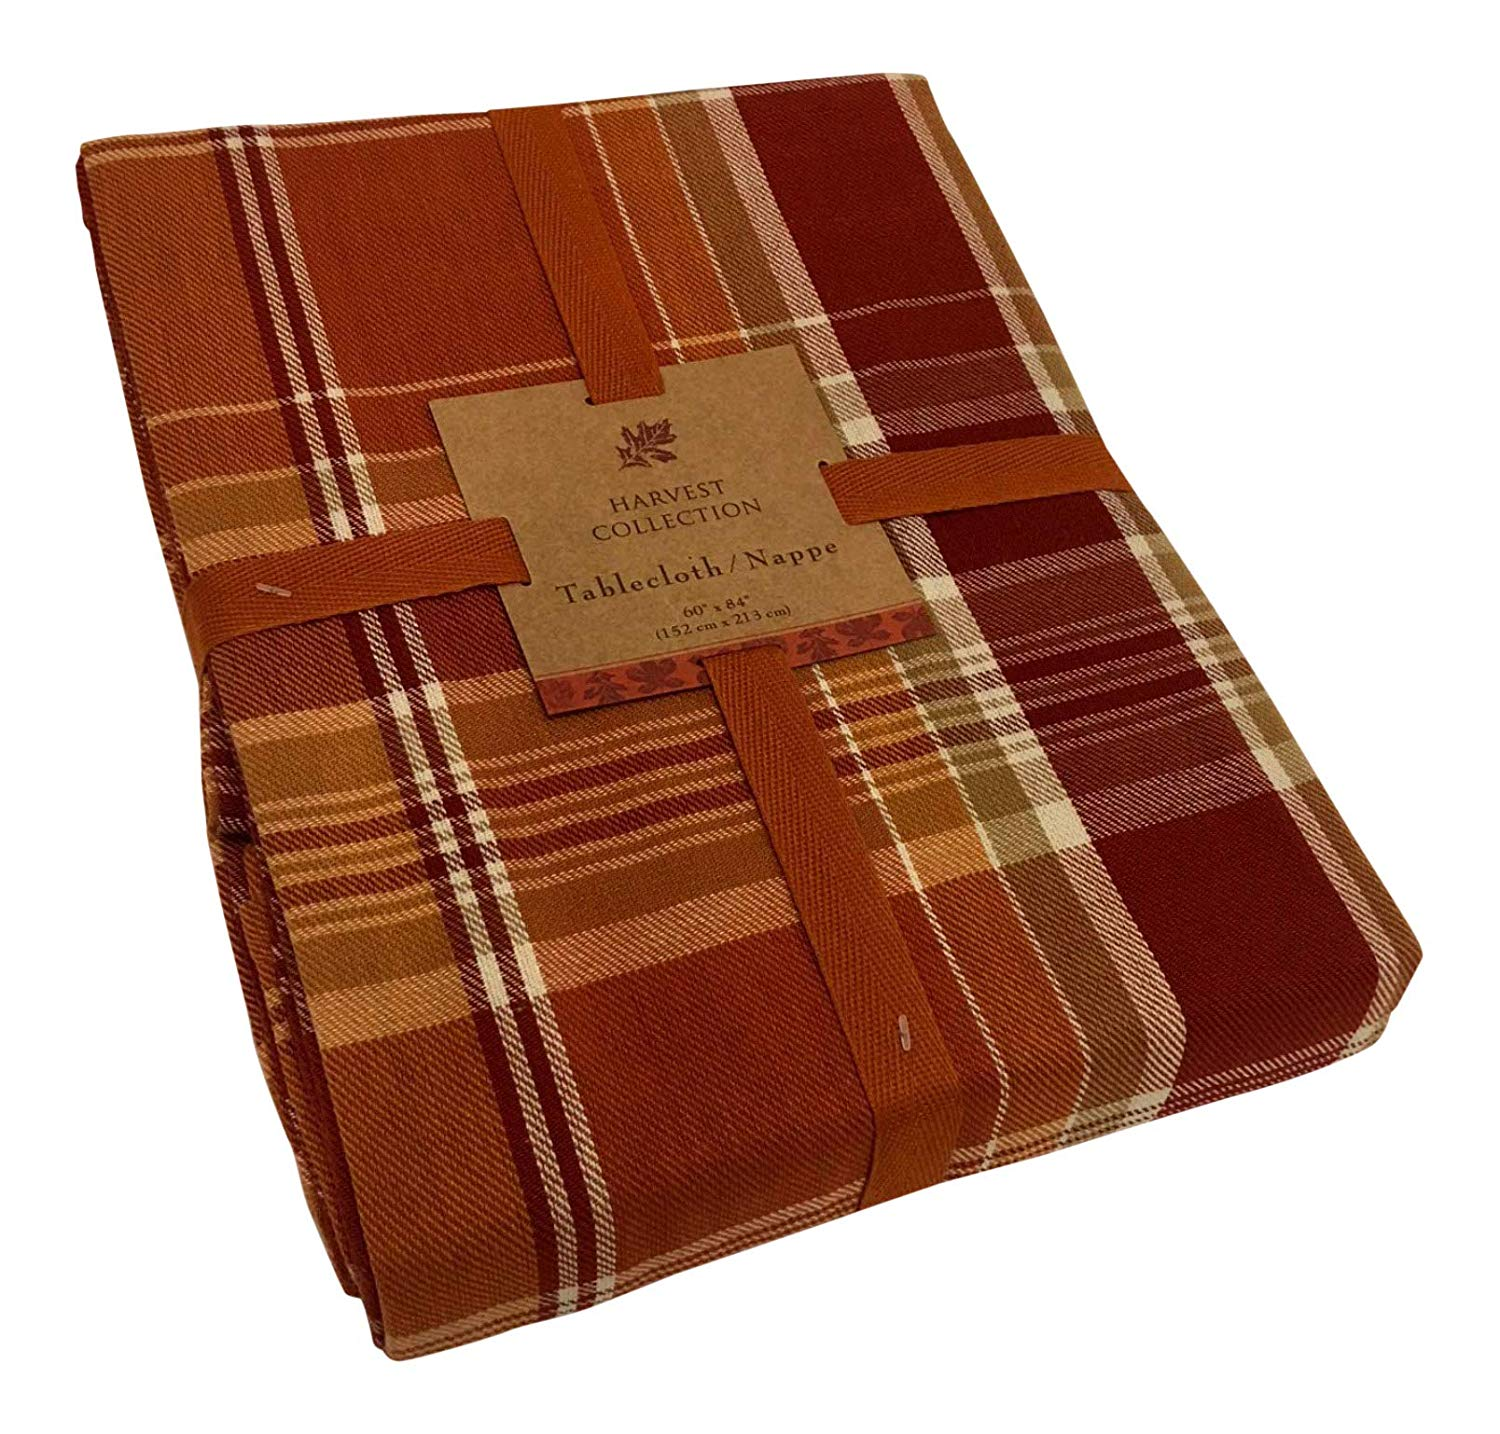 """Harvest Collection Cinnamon Spice Plaid Fall/Autumn / Thanksgiving Tablecloth 52"""" x 70"""" 